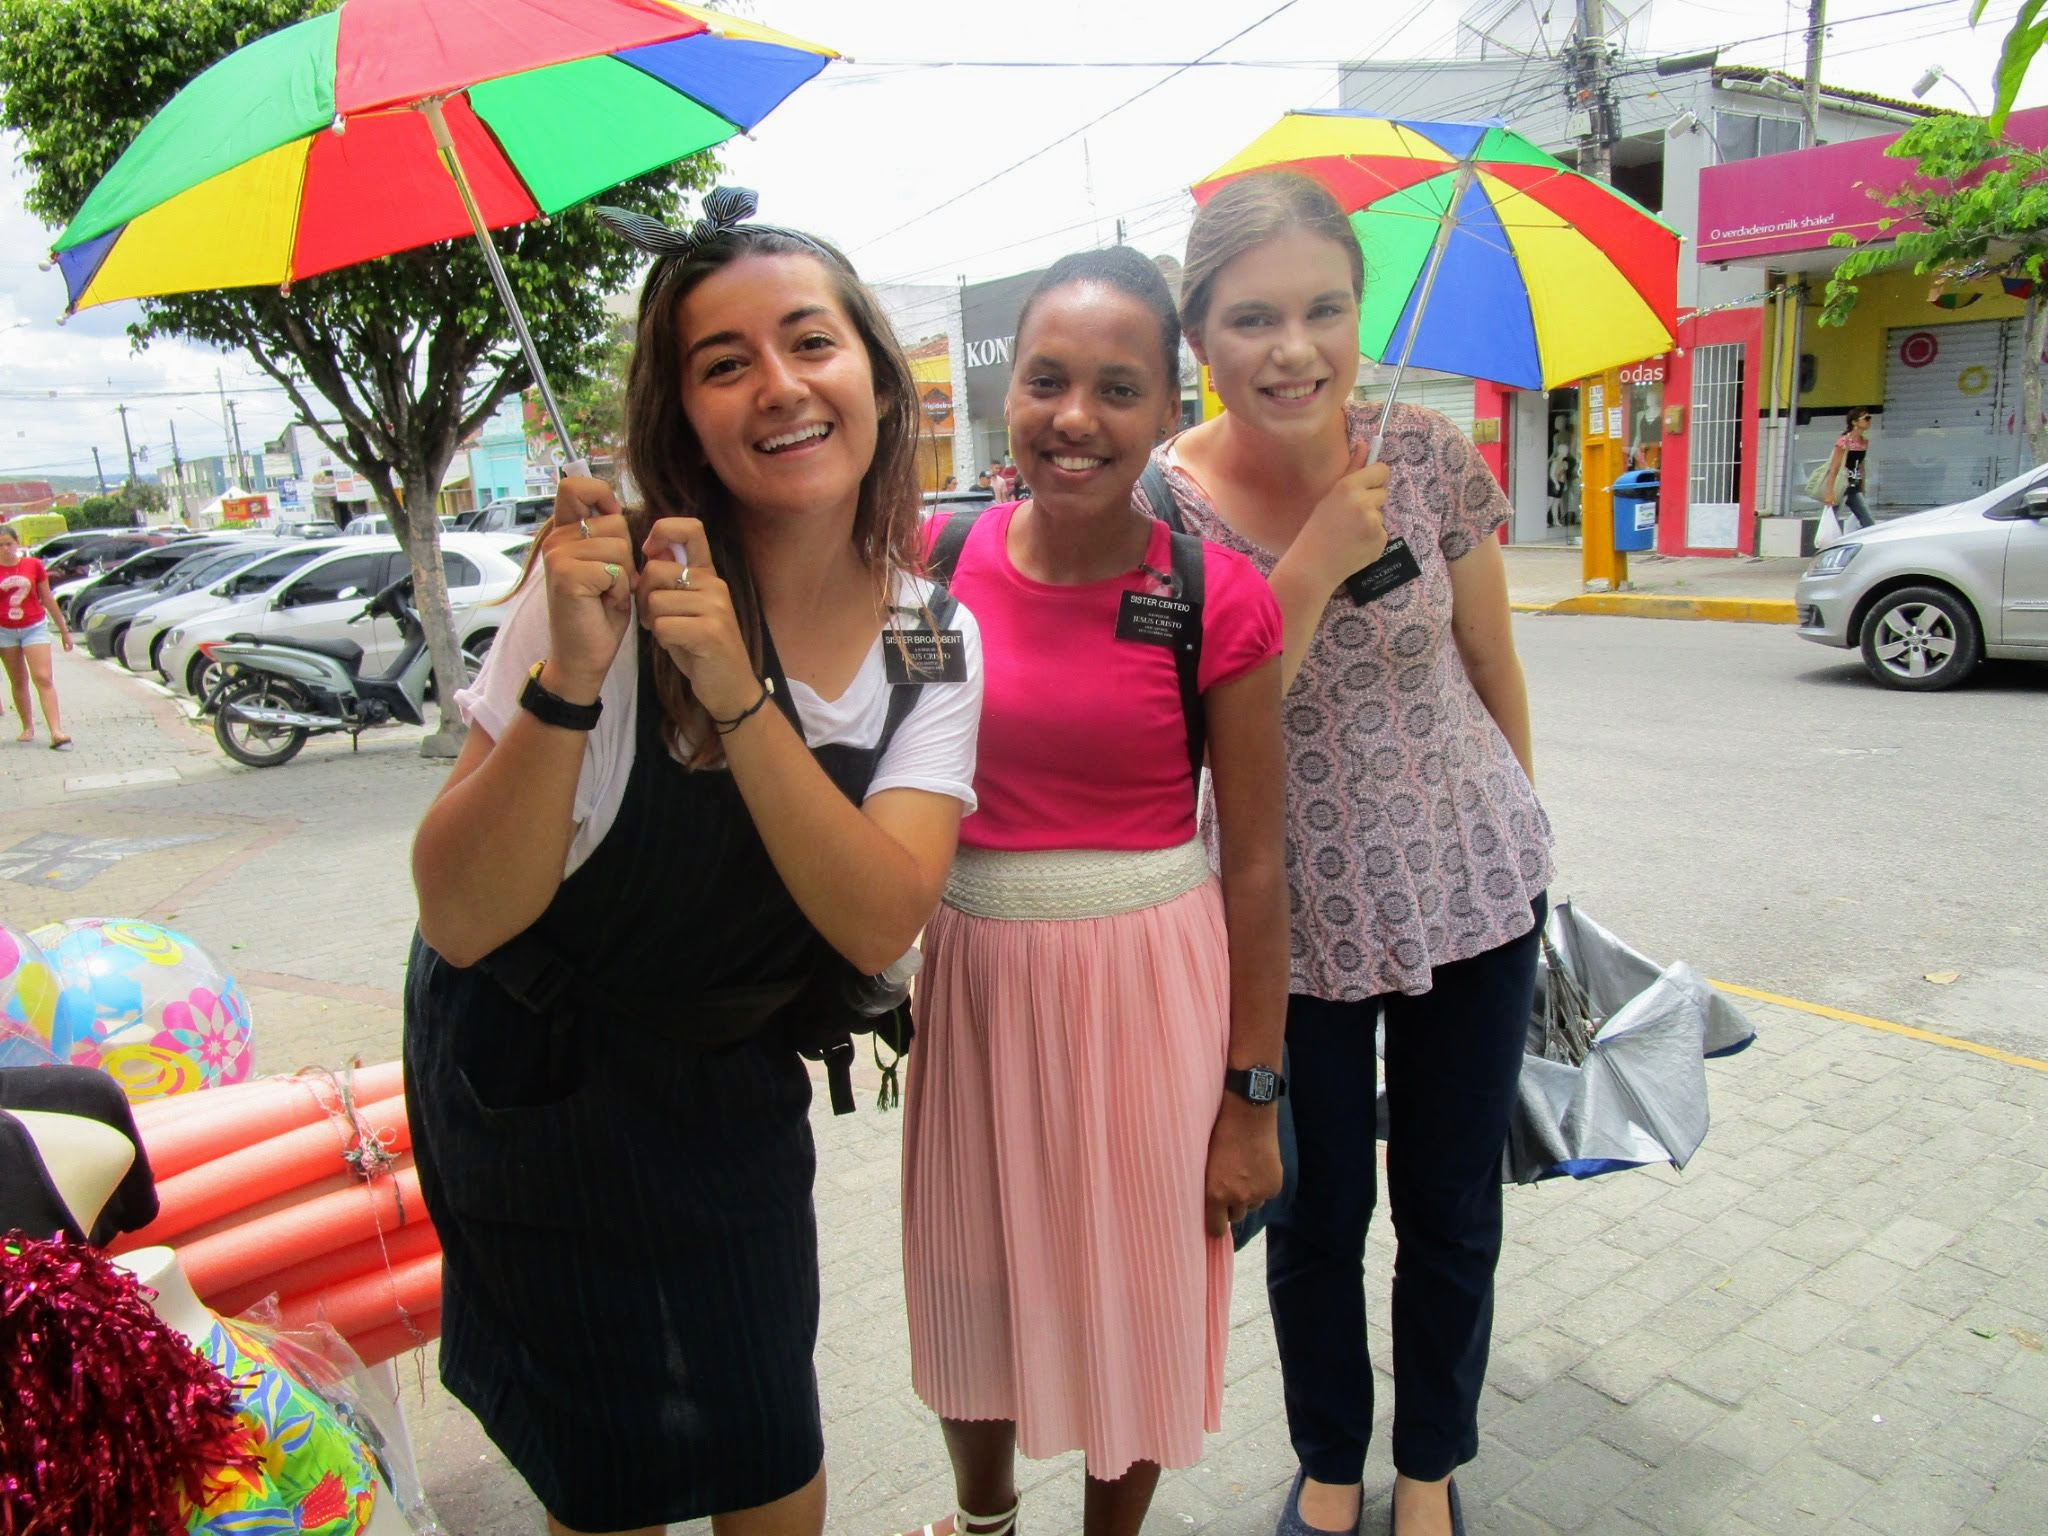 Sister Broadbent, Sister Centeio, and Sister Faulconer, Missionaries for the Church of Jesus Christ of Latter-day Saints holding small frevo umbrellas in Brazil